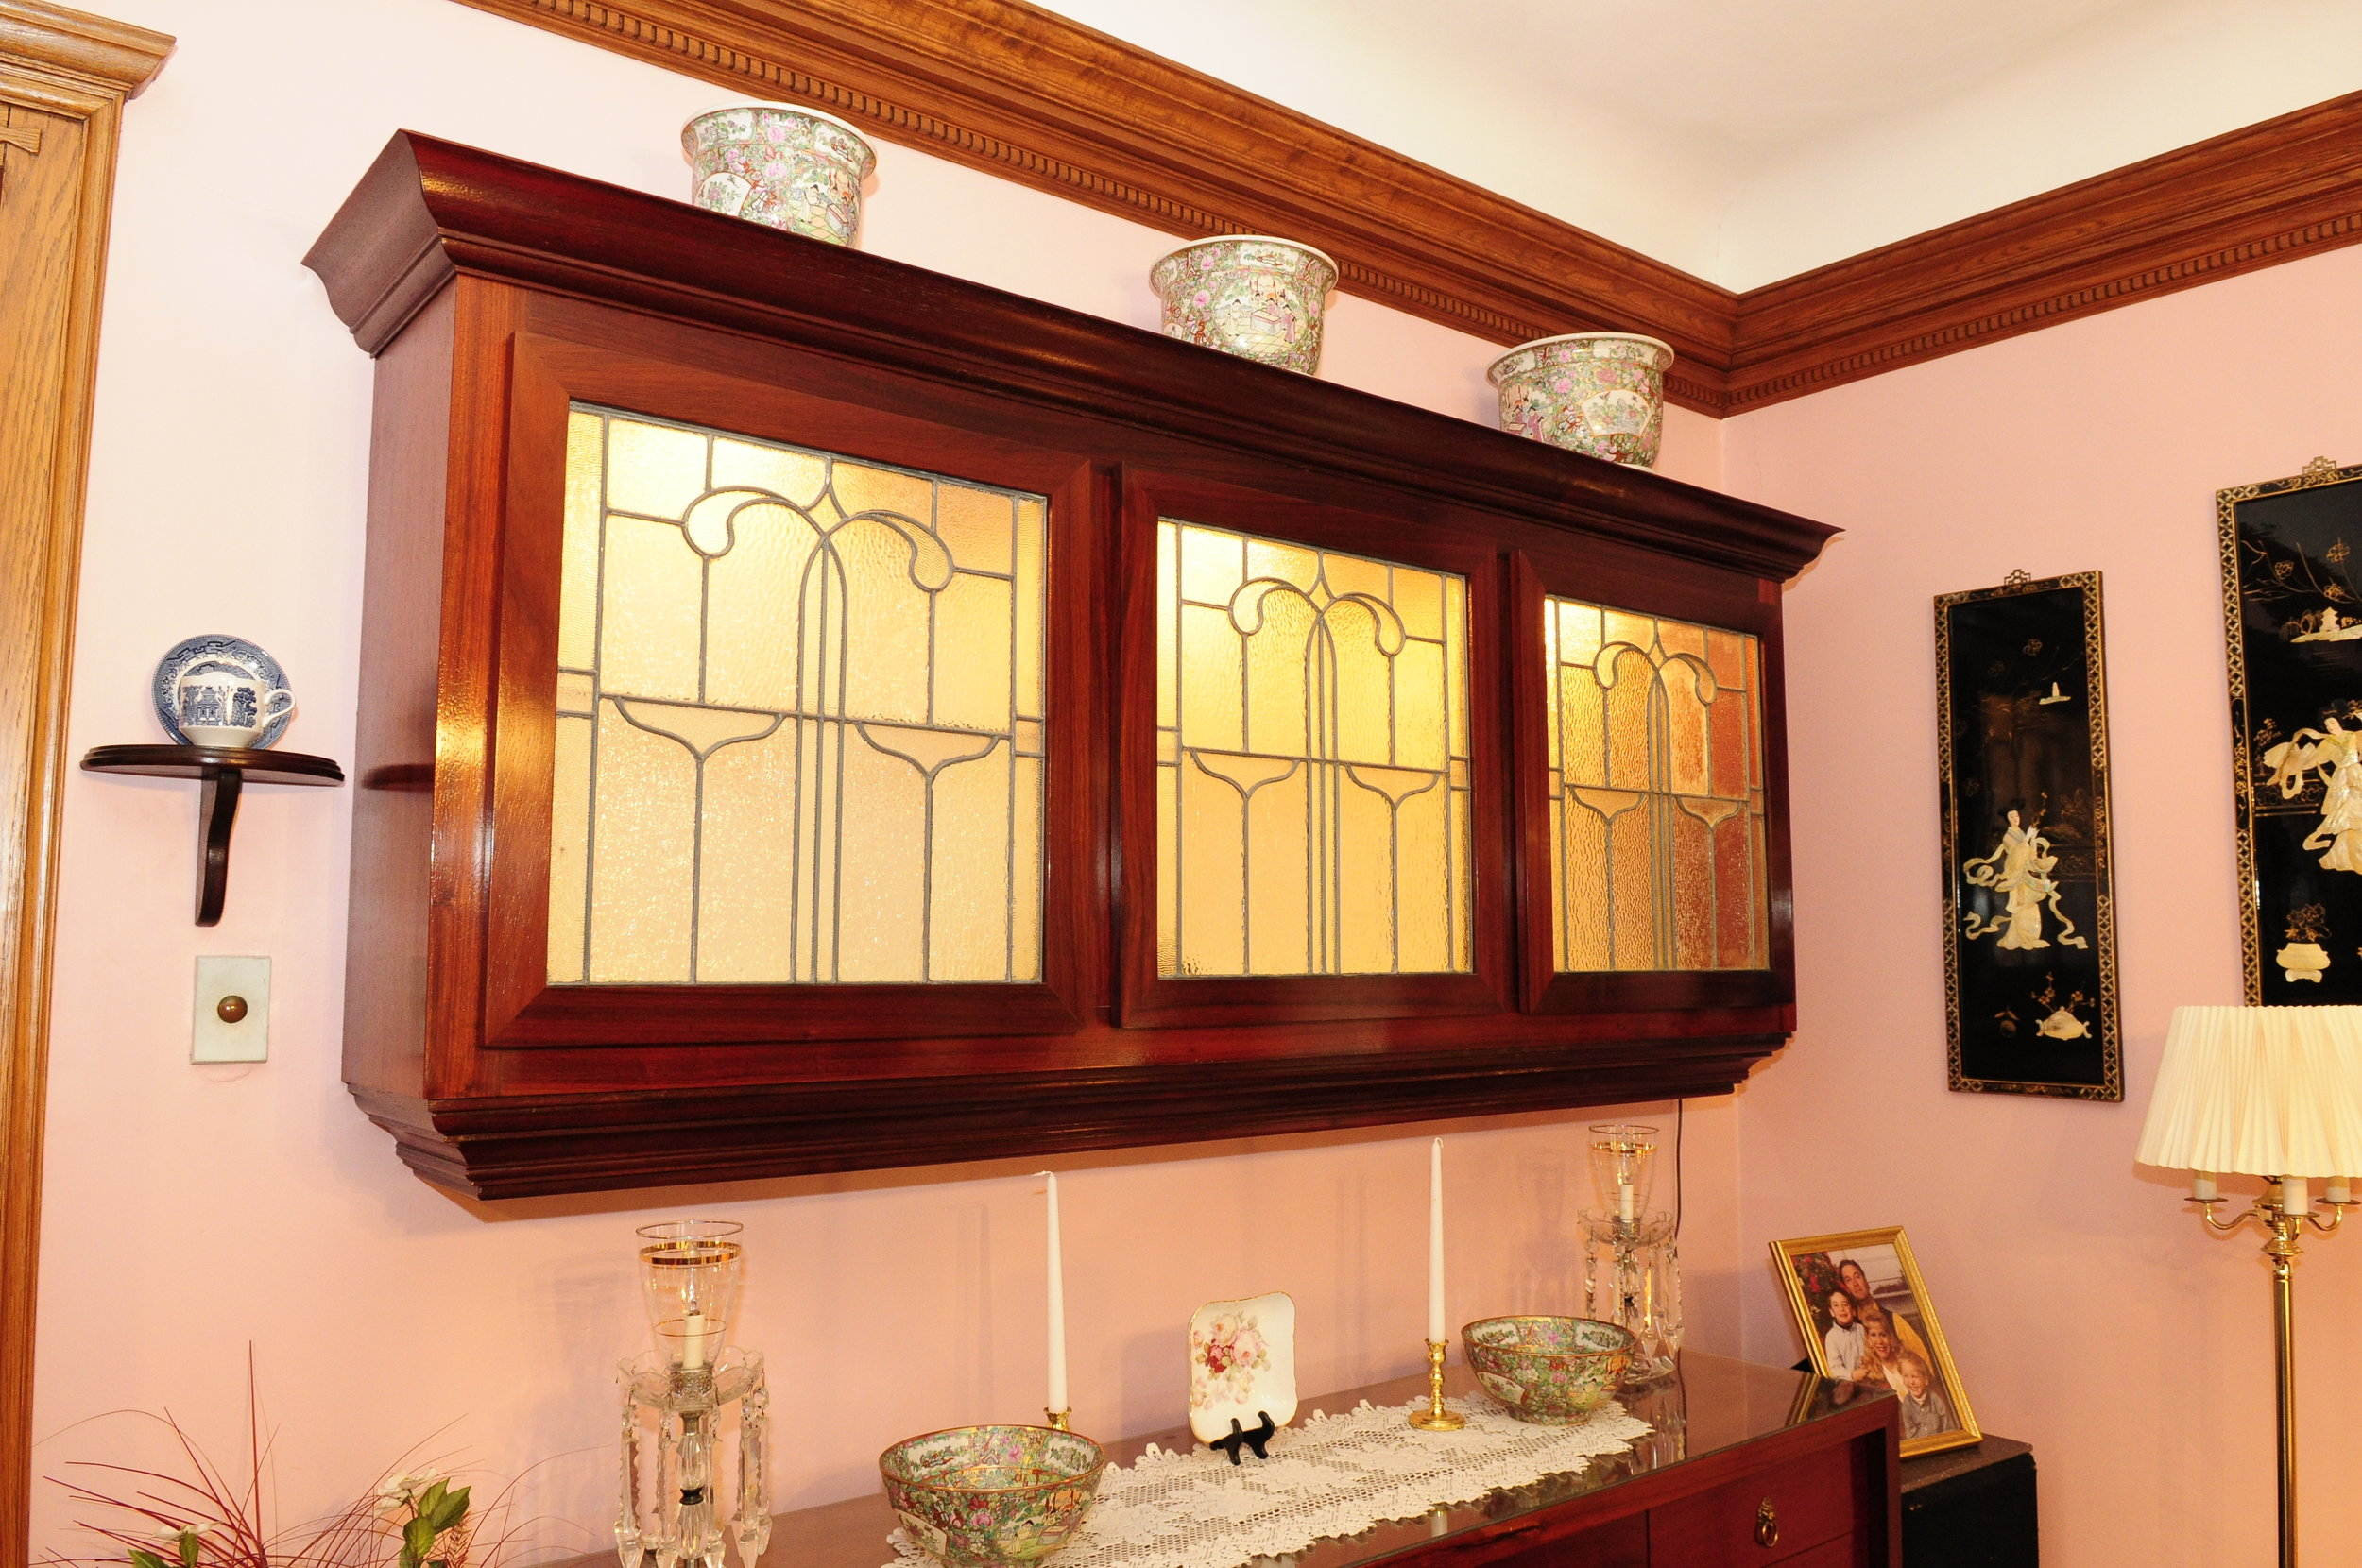 Larry designed and built this Cabinet and Credenza made from Paduc and Purple Heart woods.